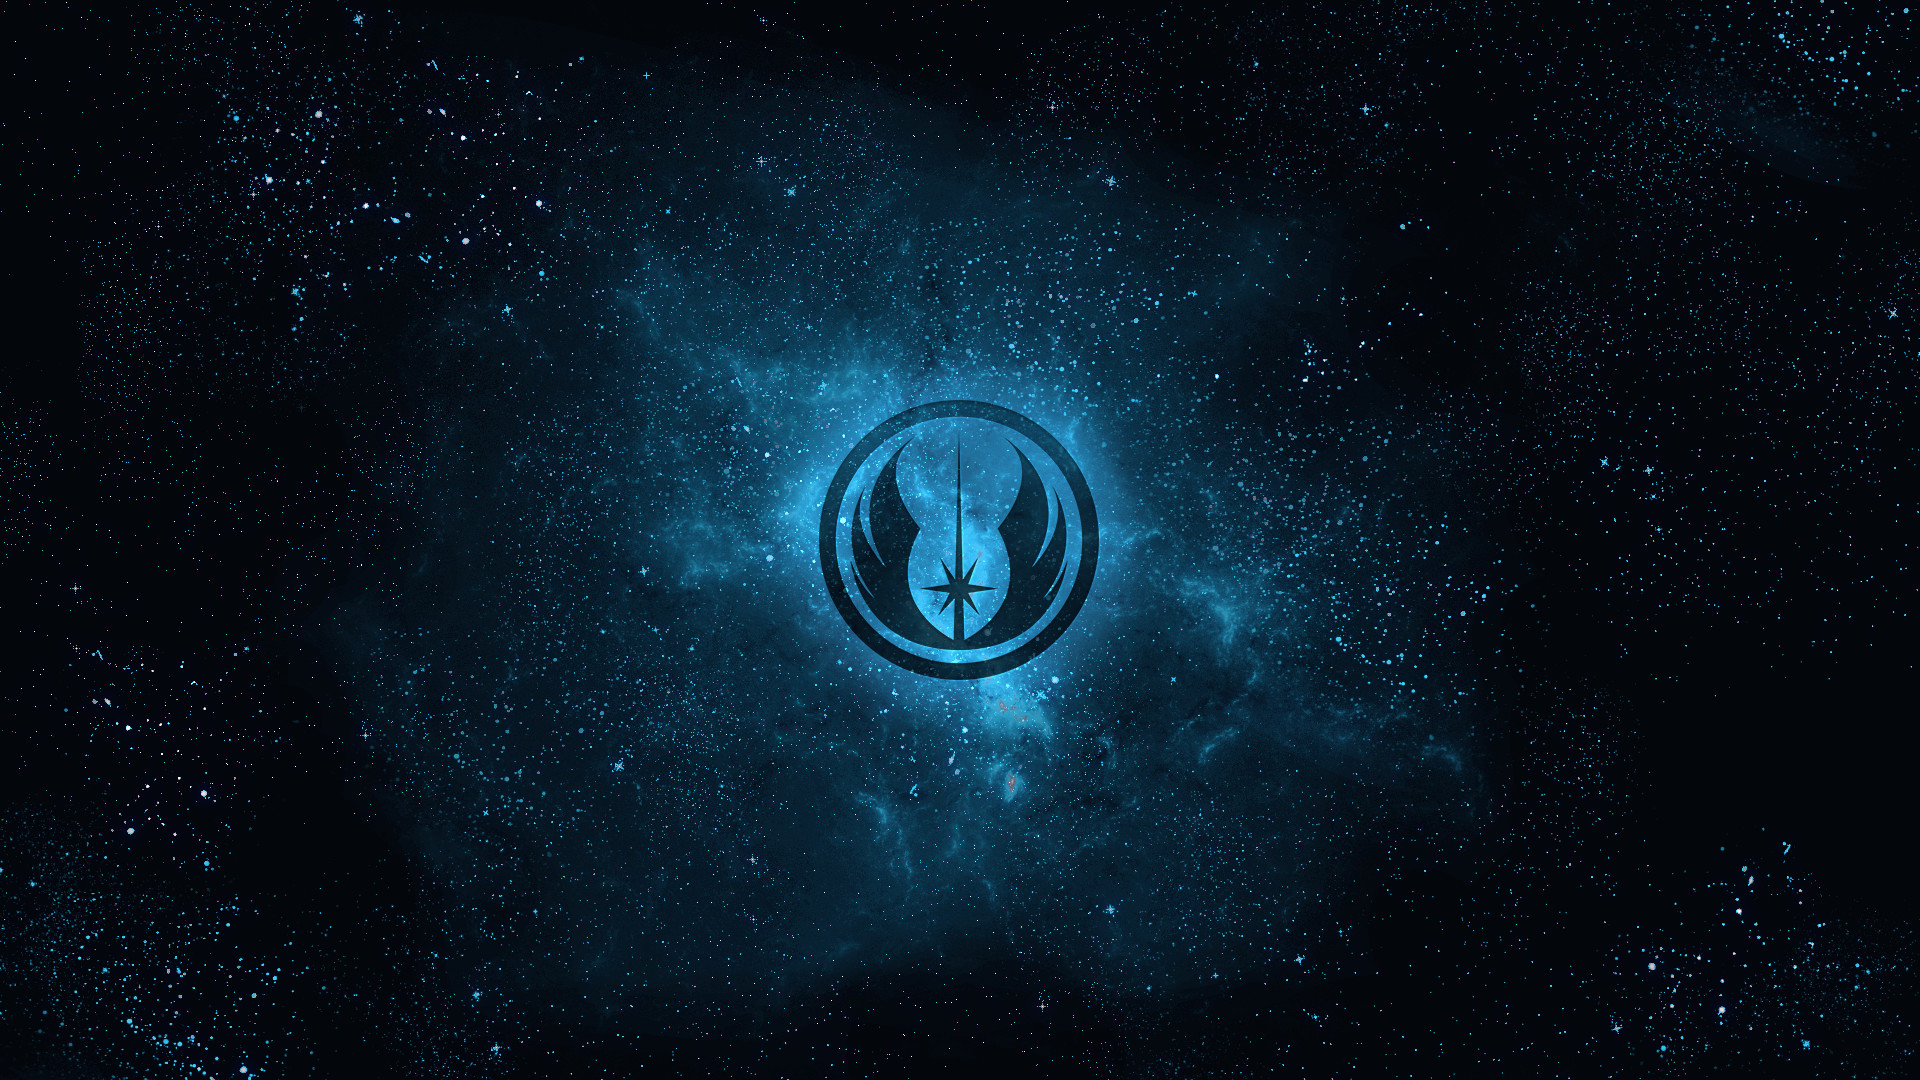 Jedi Outcast Wallpaper Posted By Samantha Walker